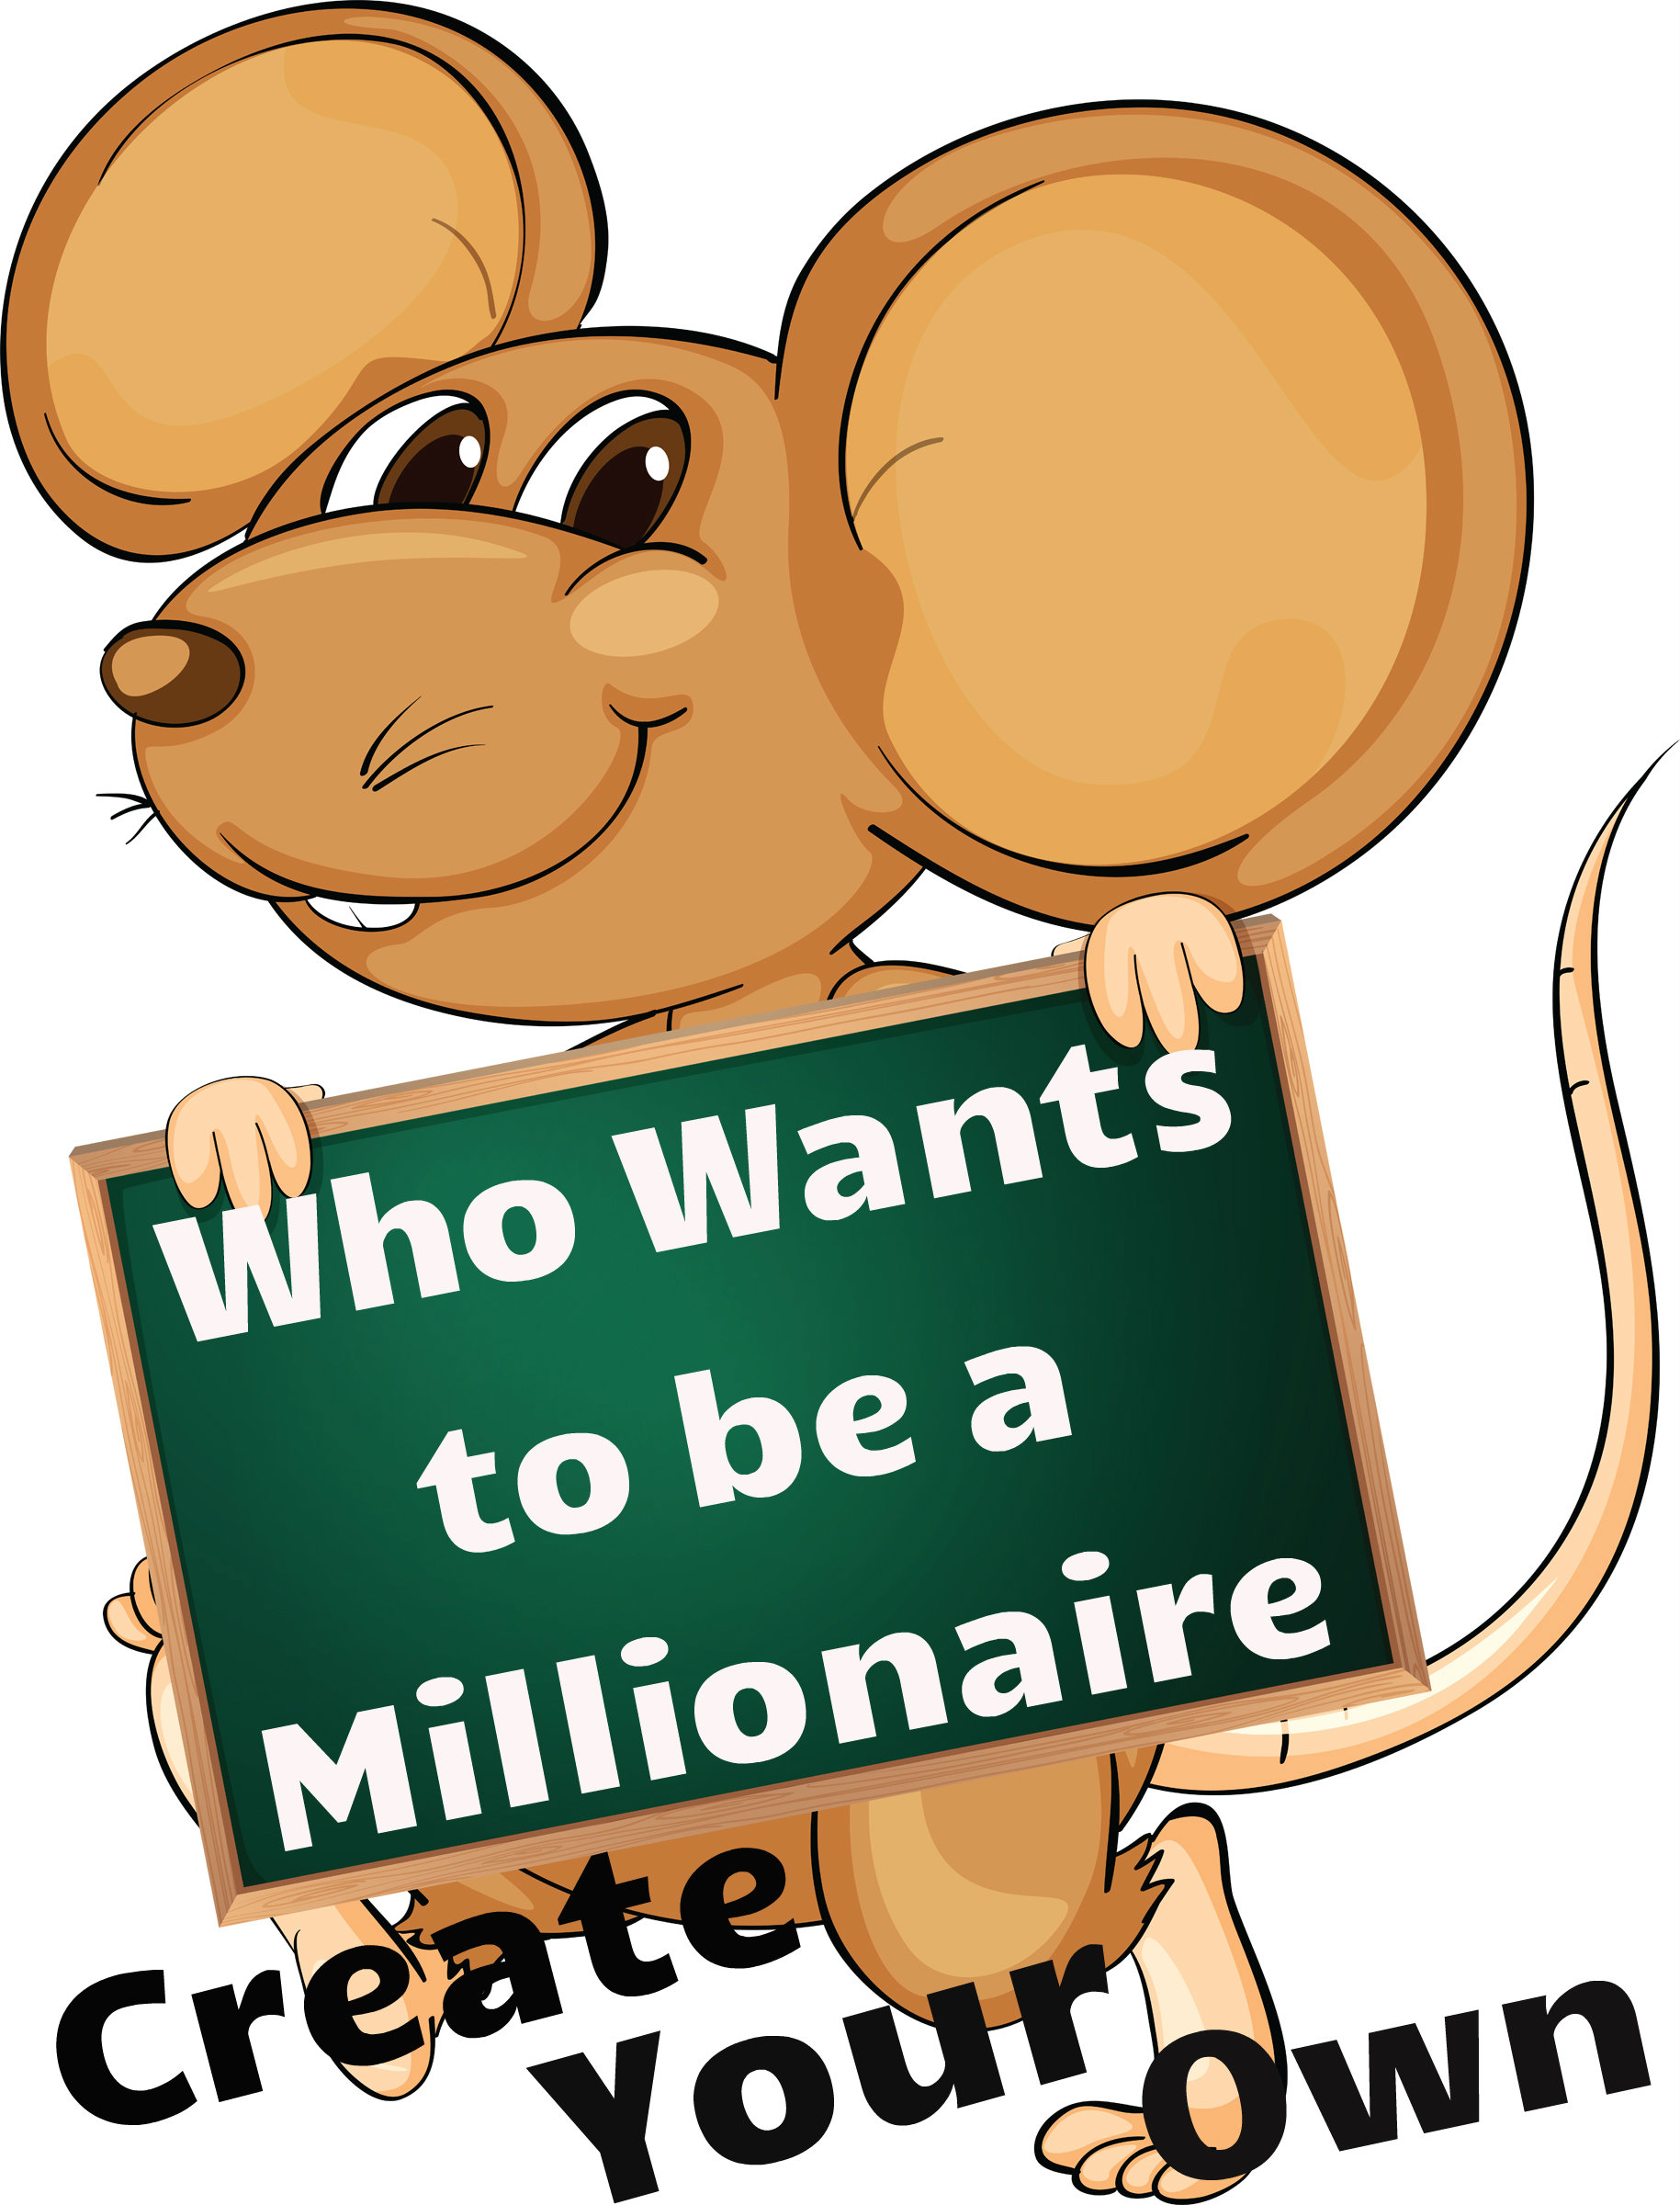 Who want to be a millionaire free game template for Who wants to be a millionaire powerpoint template with music